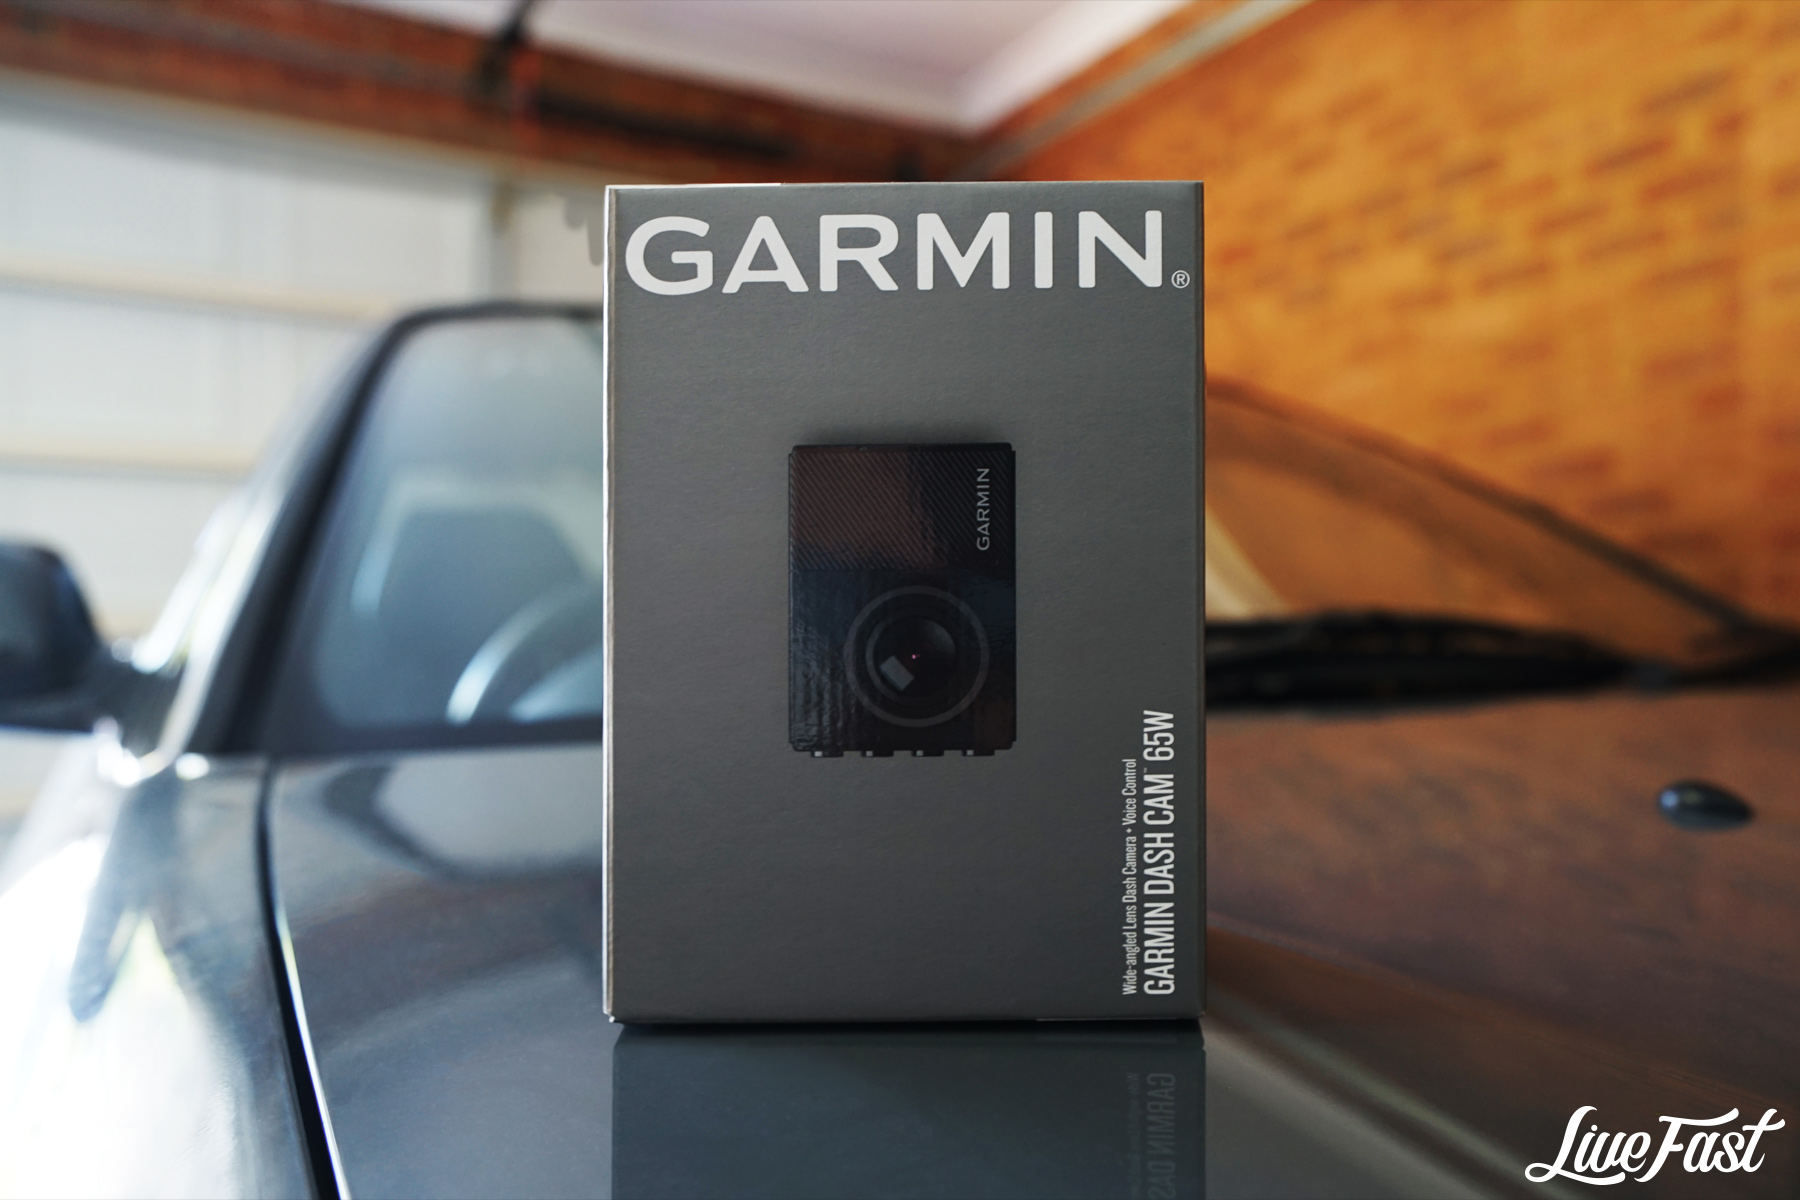 PRODUCT REVIEW: THE GARMIN DASH CAM 65W – Live Fast